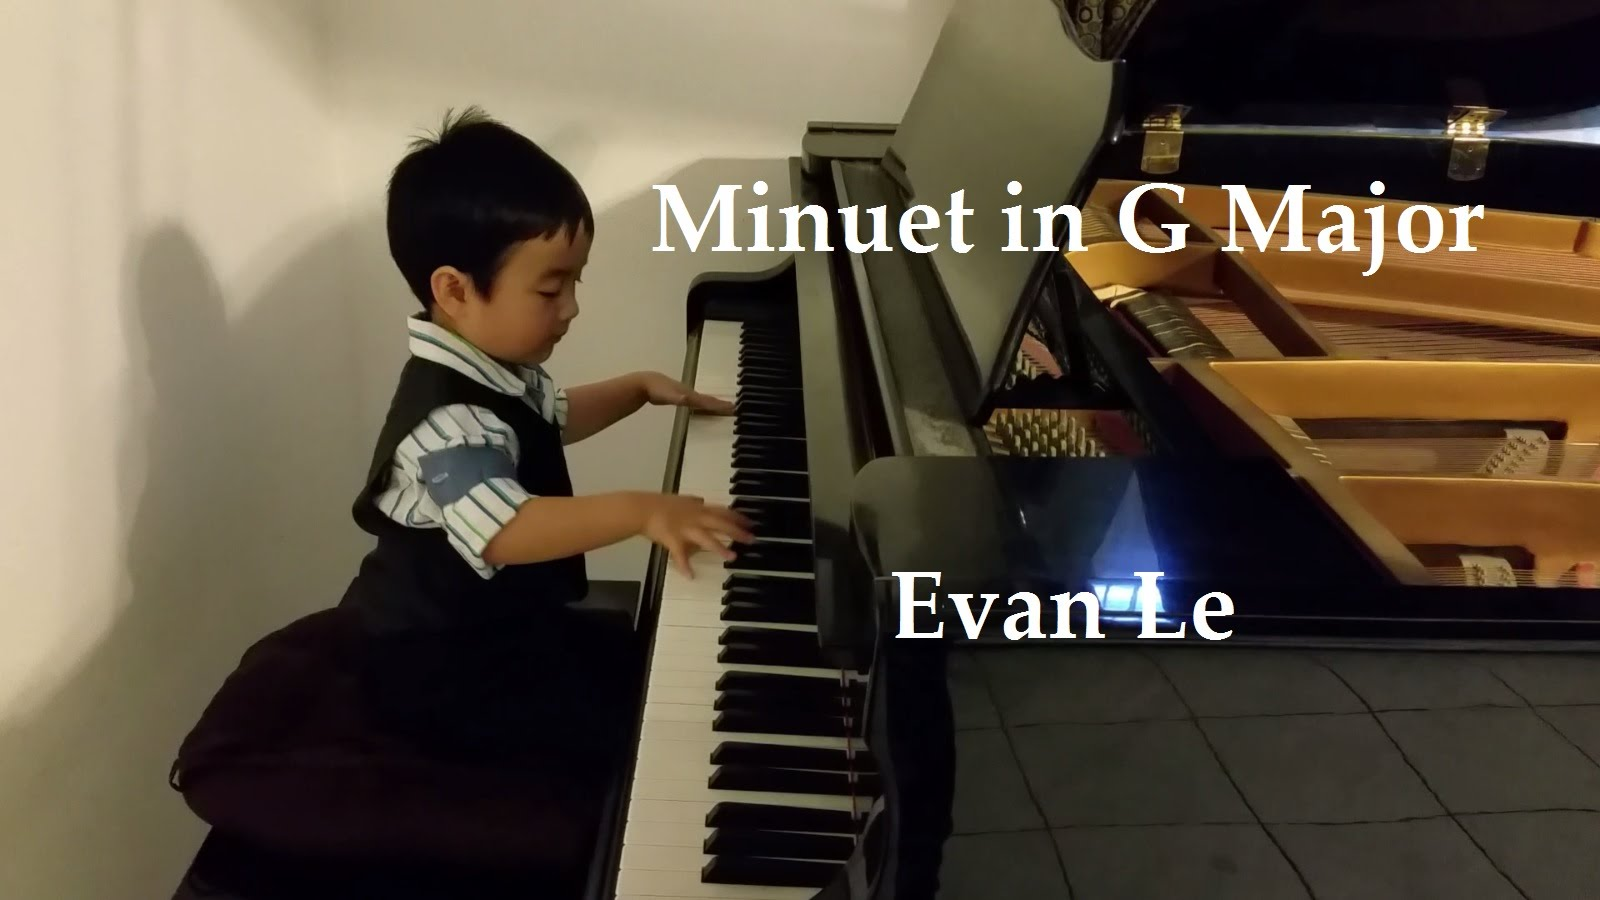 Evan Le – Minuet in G Major